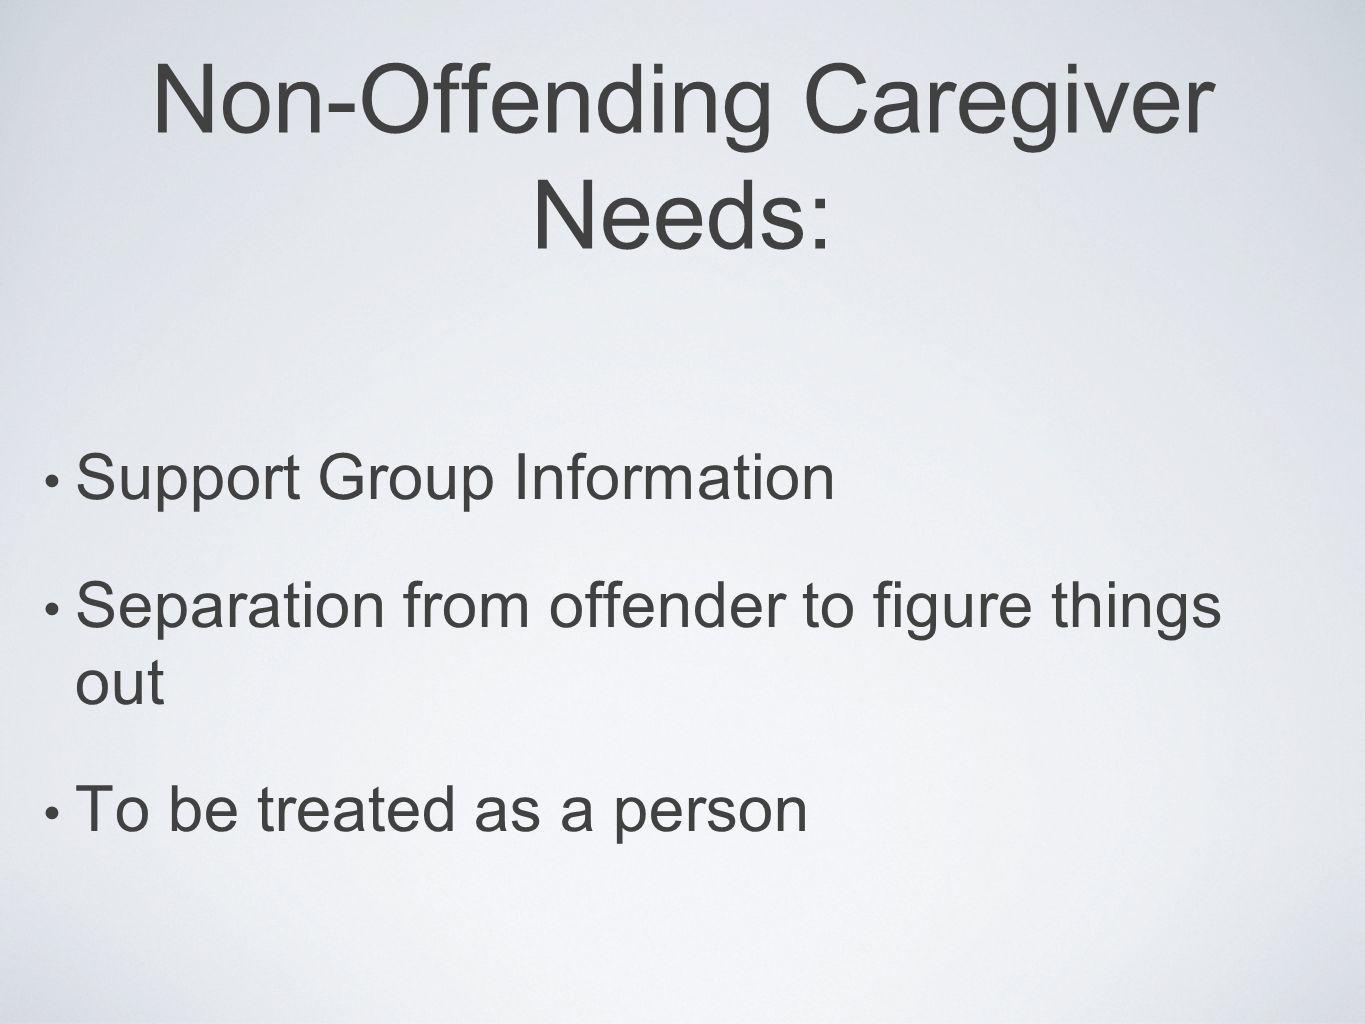 Non-Offending Caregiver Needs: Support Group Information Separation from offender to figure things out To be treated as a person